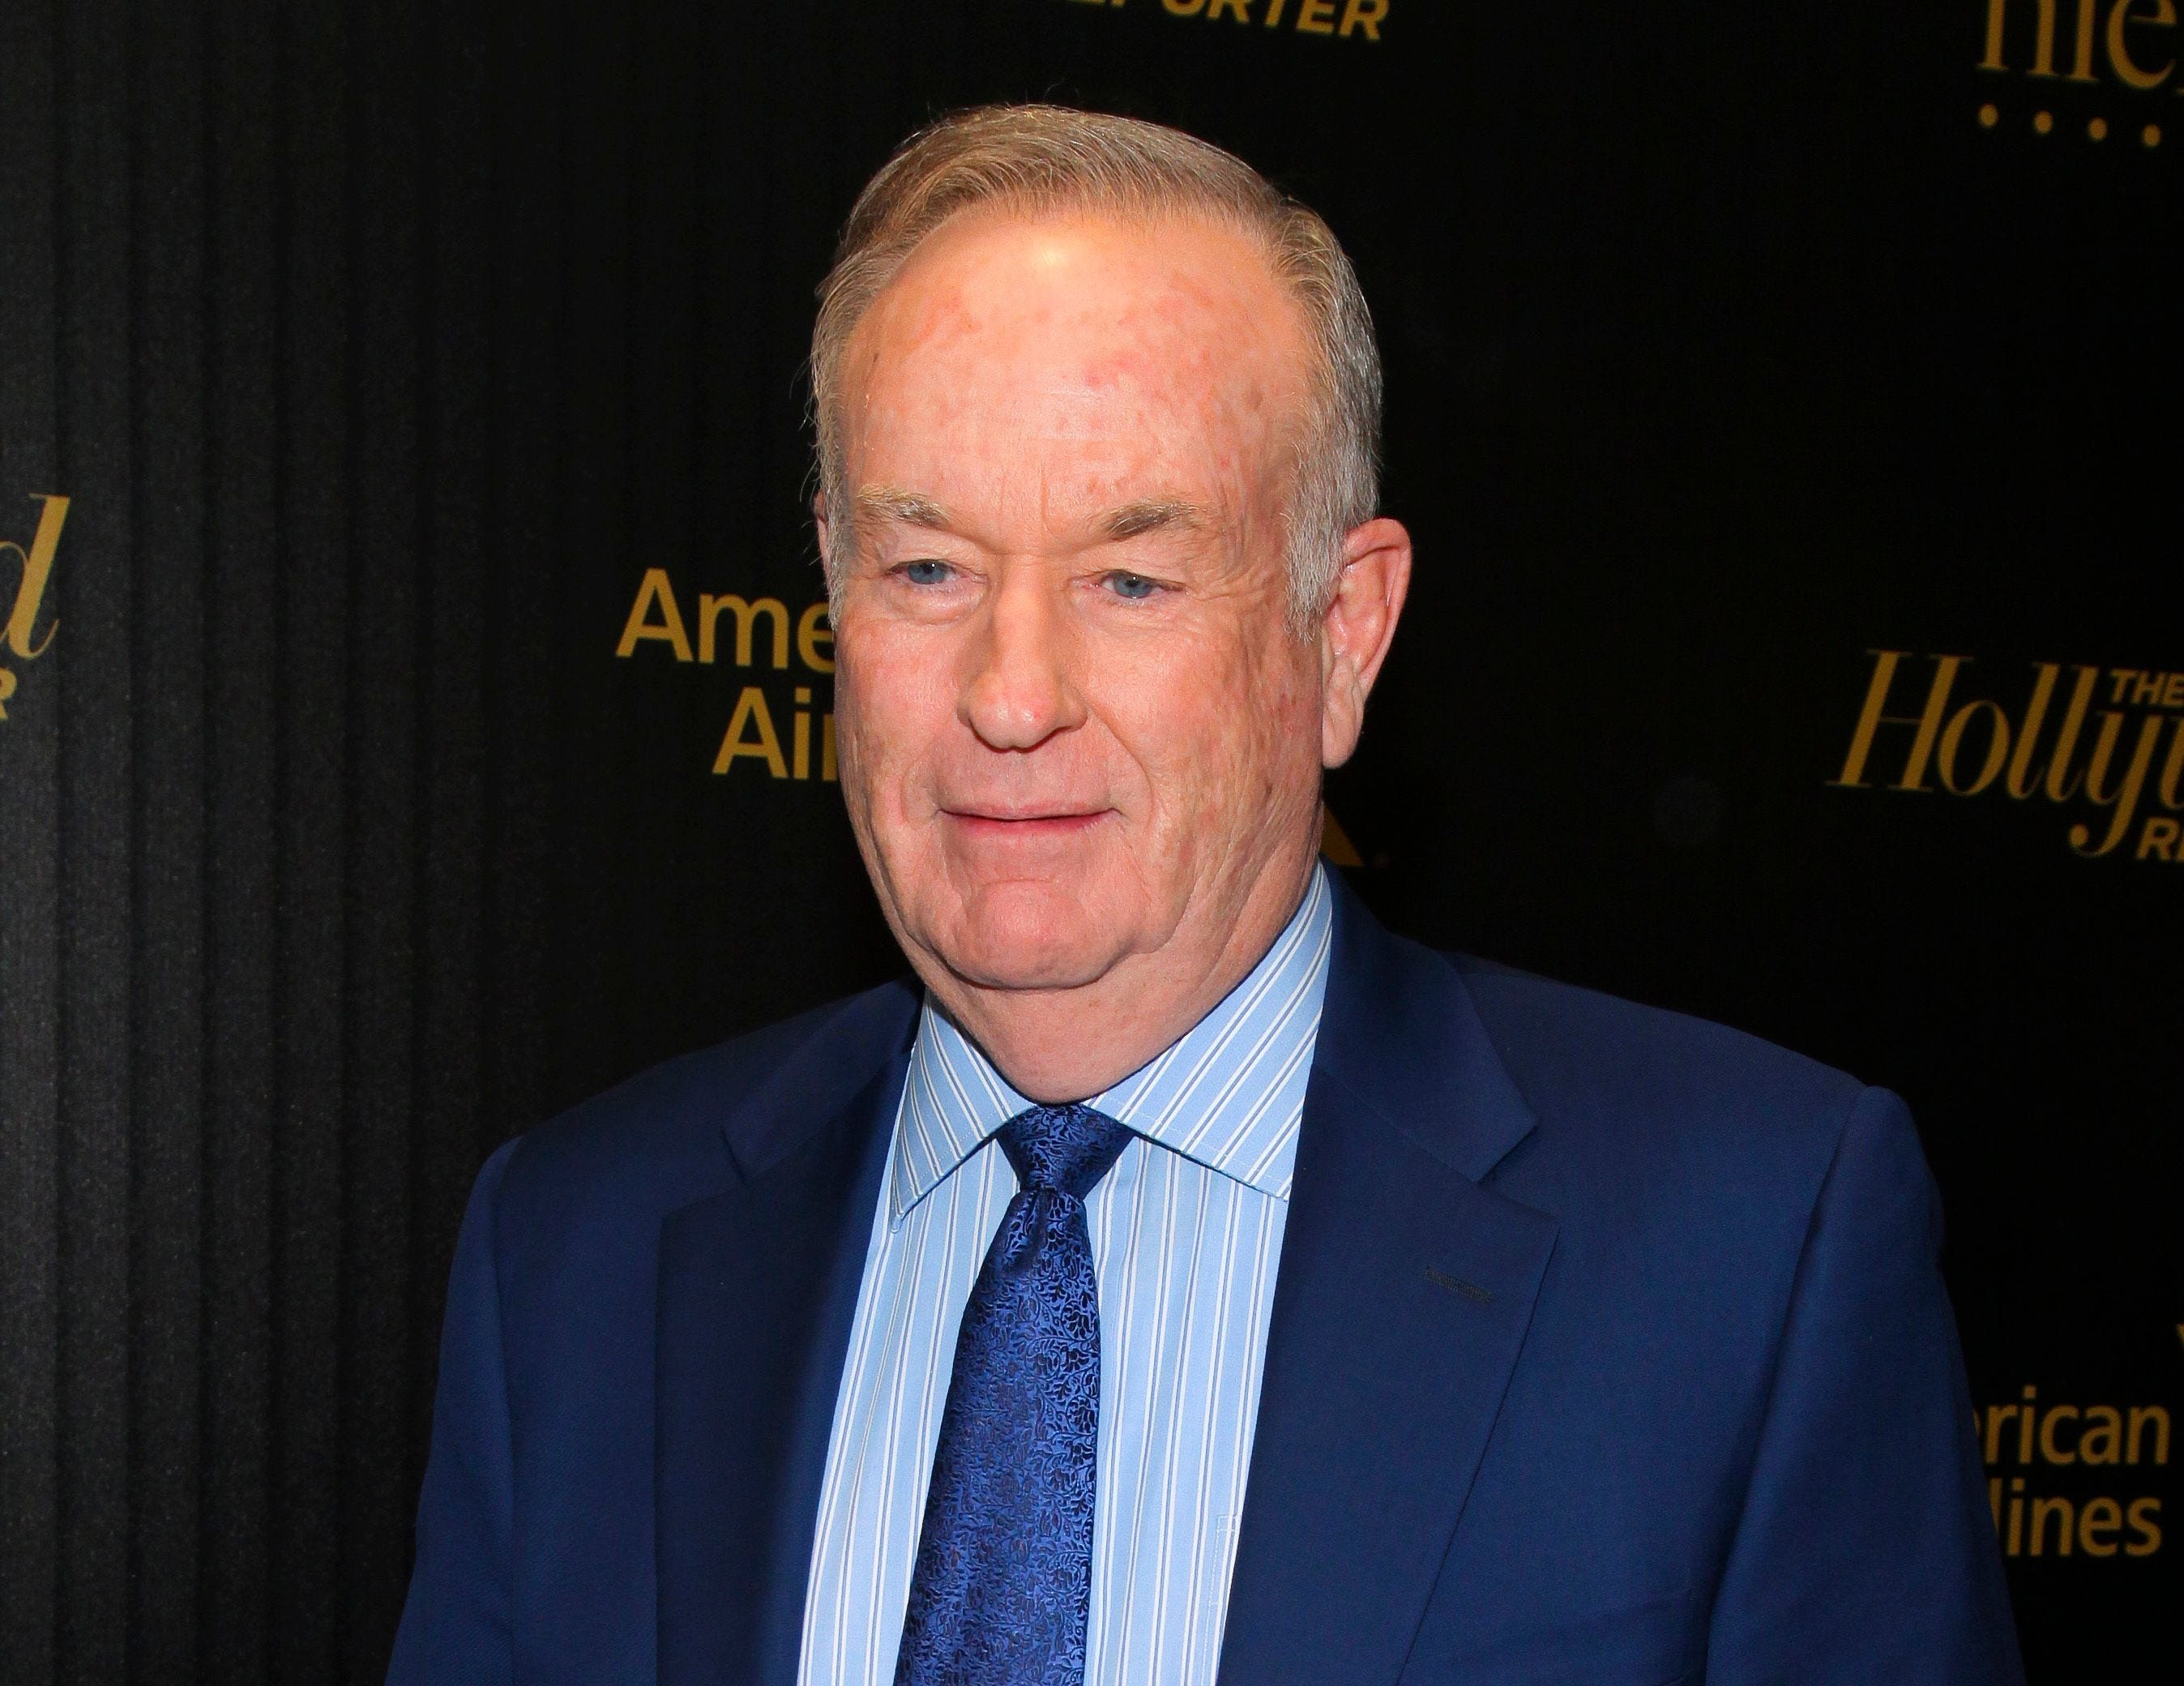 Bill O'Reilly defended his sexual harassment allegation in a new episode